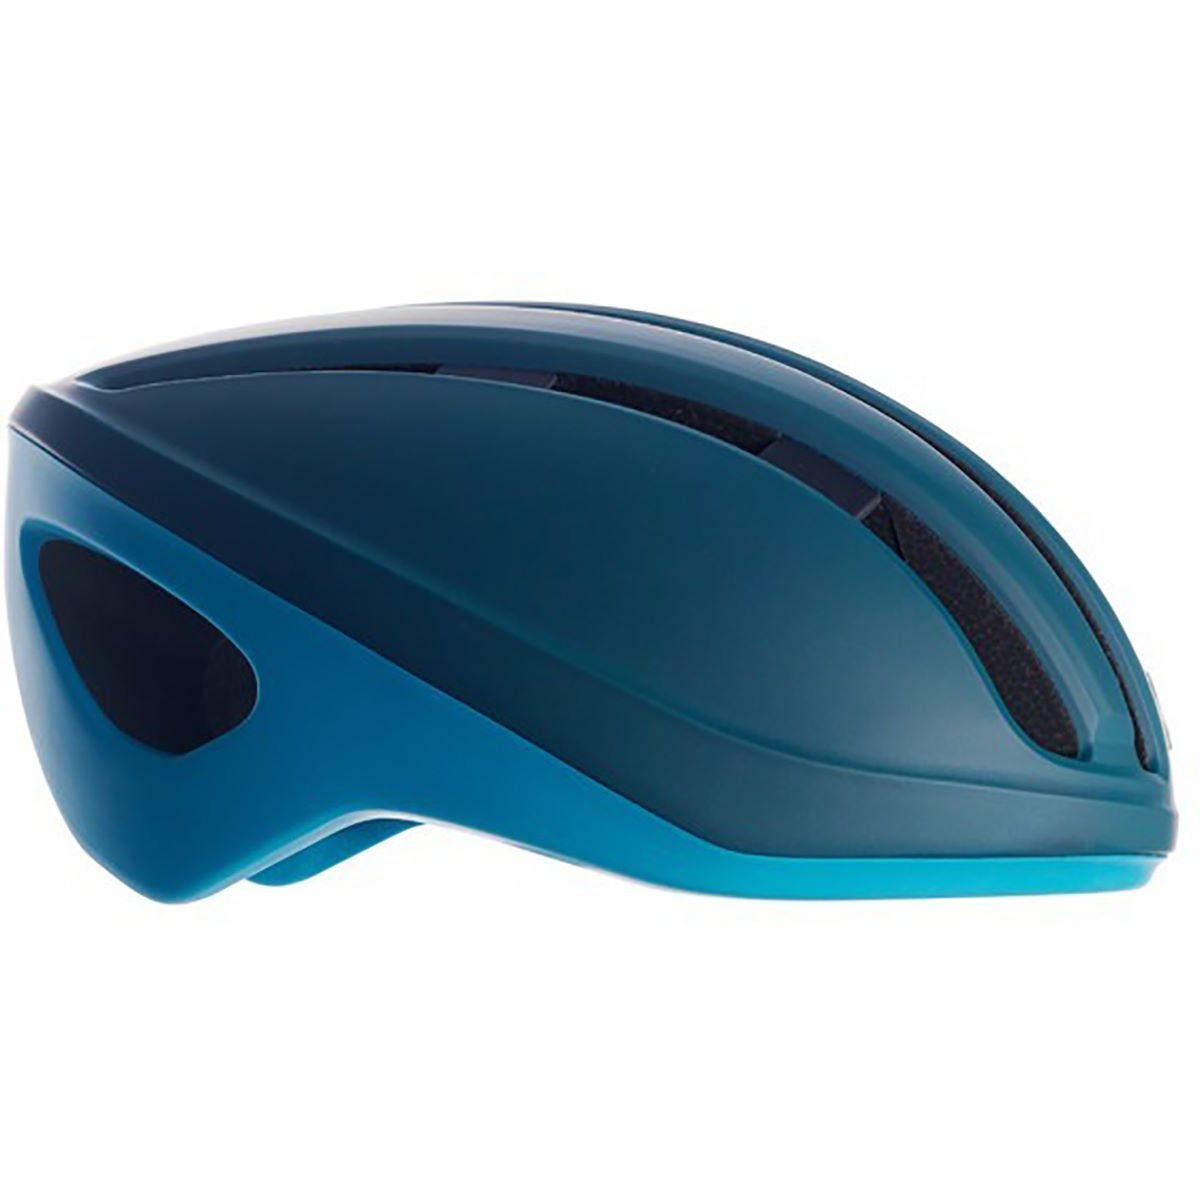 Brooks England Harrier Helmet - Cascos de carretera